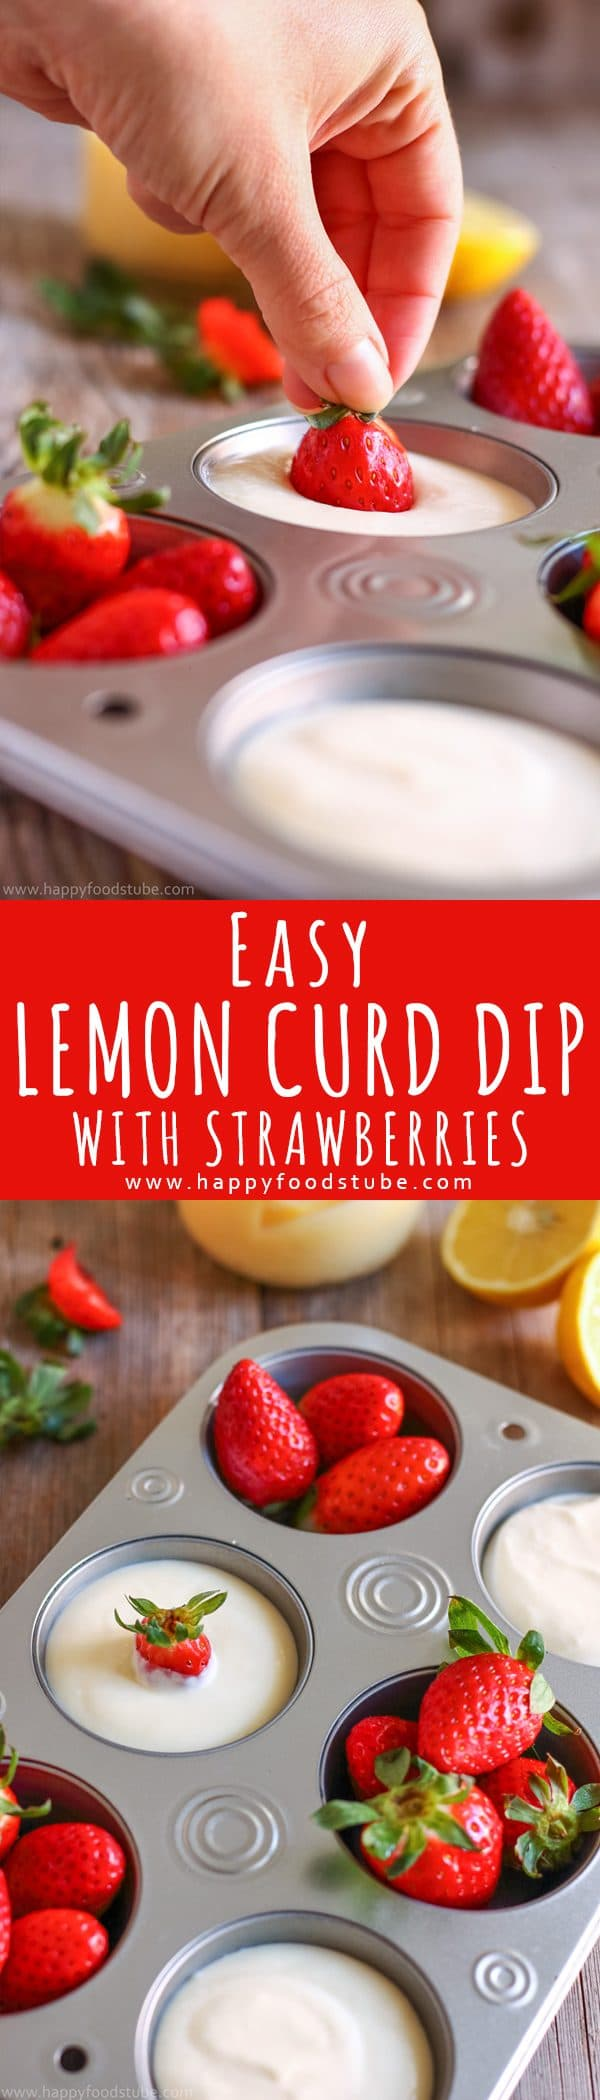 Easy Lemon Curd Dip with Strawberries Recipe Picture